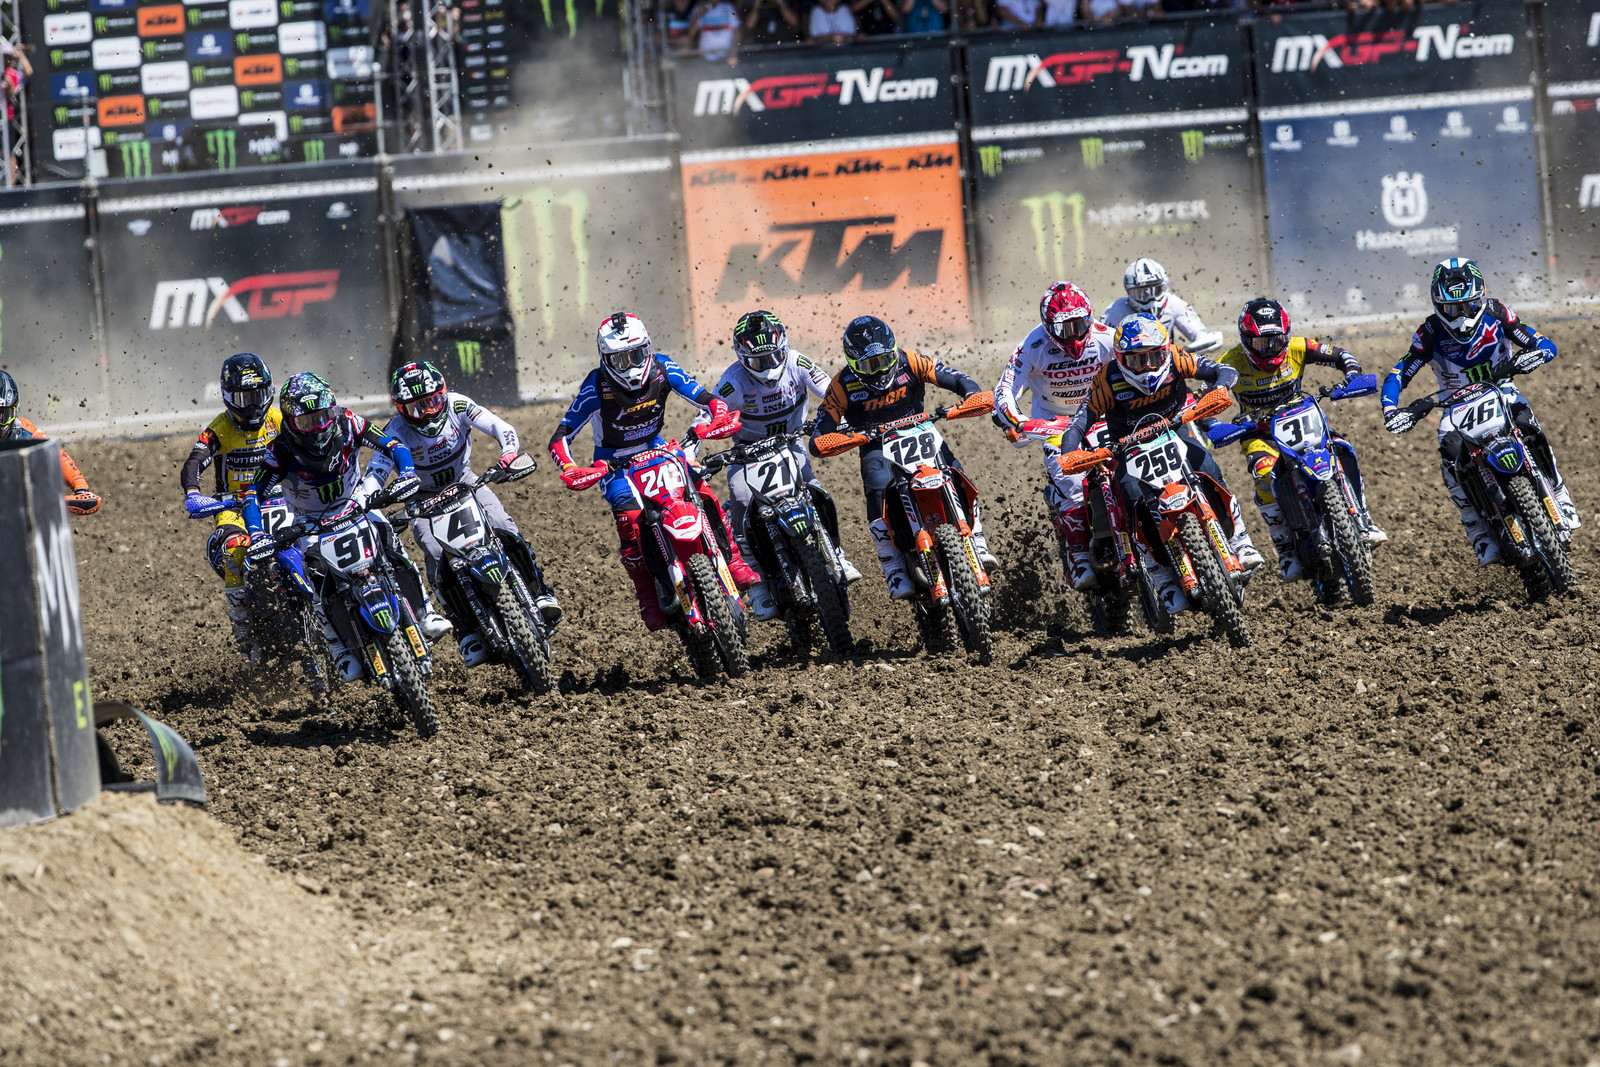 Imola Italy saw the 15th round of the MXGP series. Calling this track hardpack would be a gross understatement.